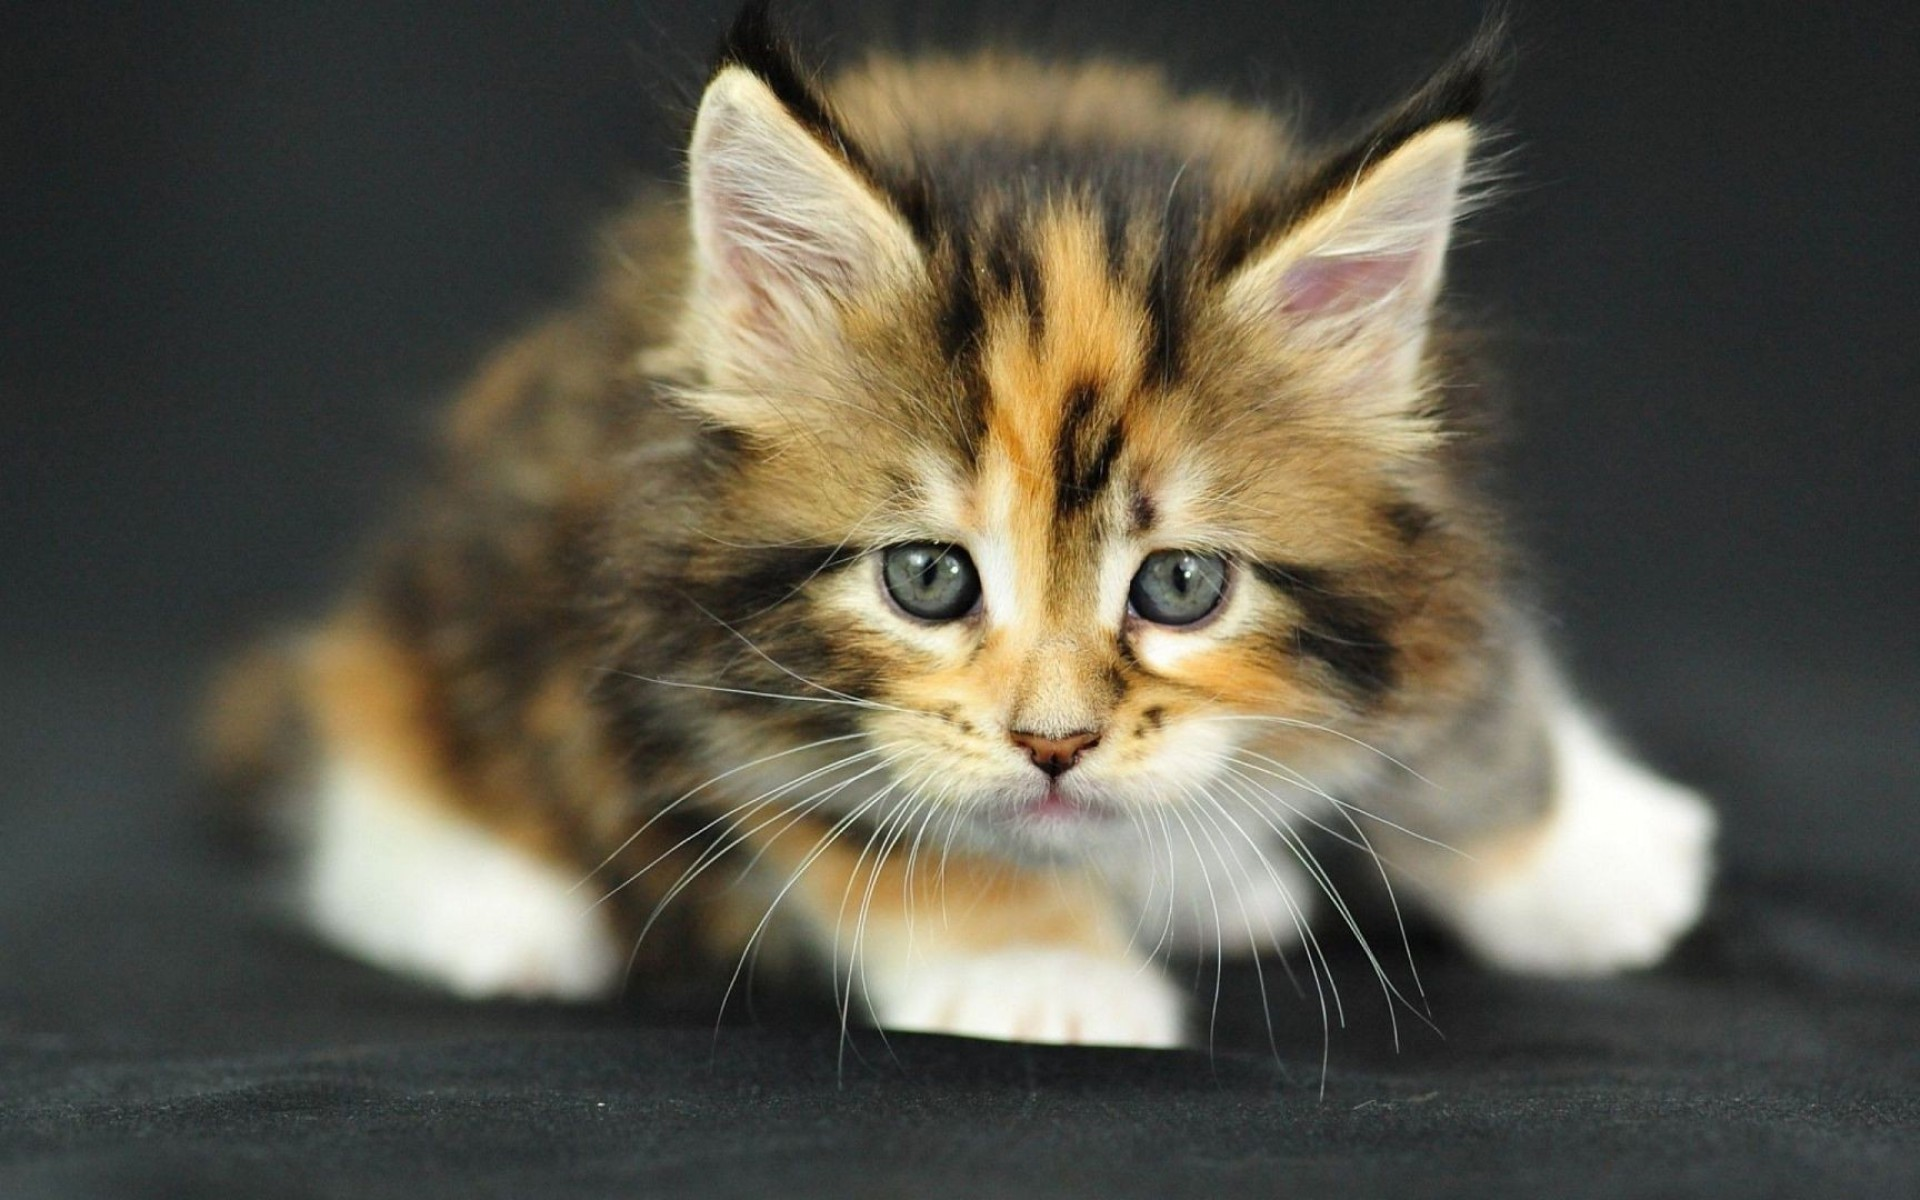 cute kitten pictures wallpaper (60+ images)